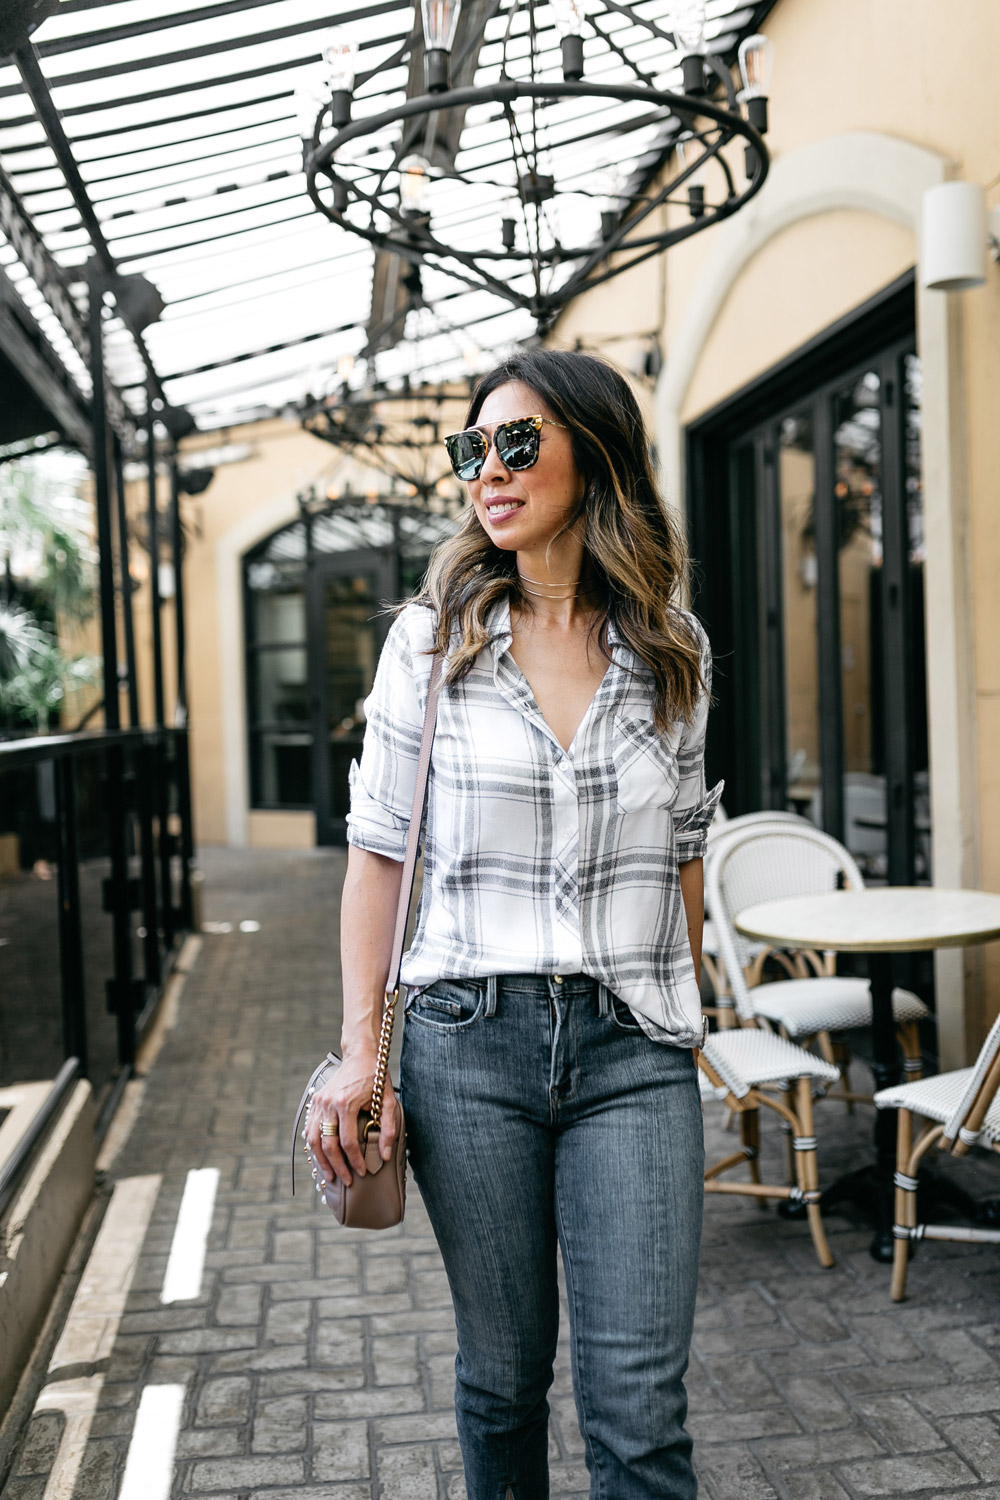 RAILS hunter plaid shirt frame front split jeans gucci pearl marmont camera bag sonix parker sunglasses